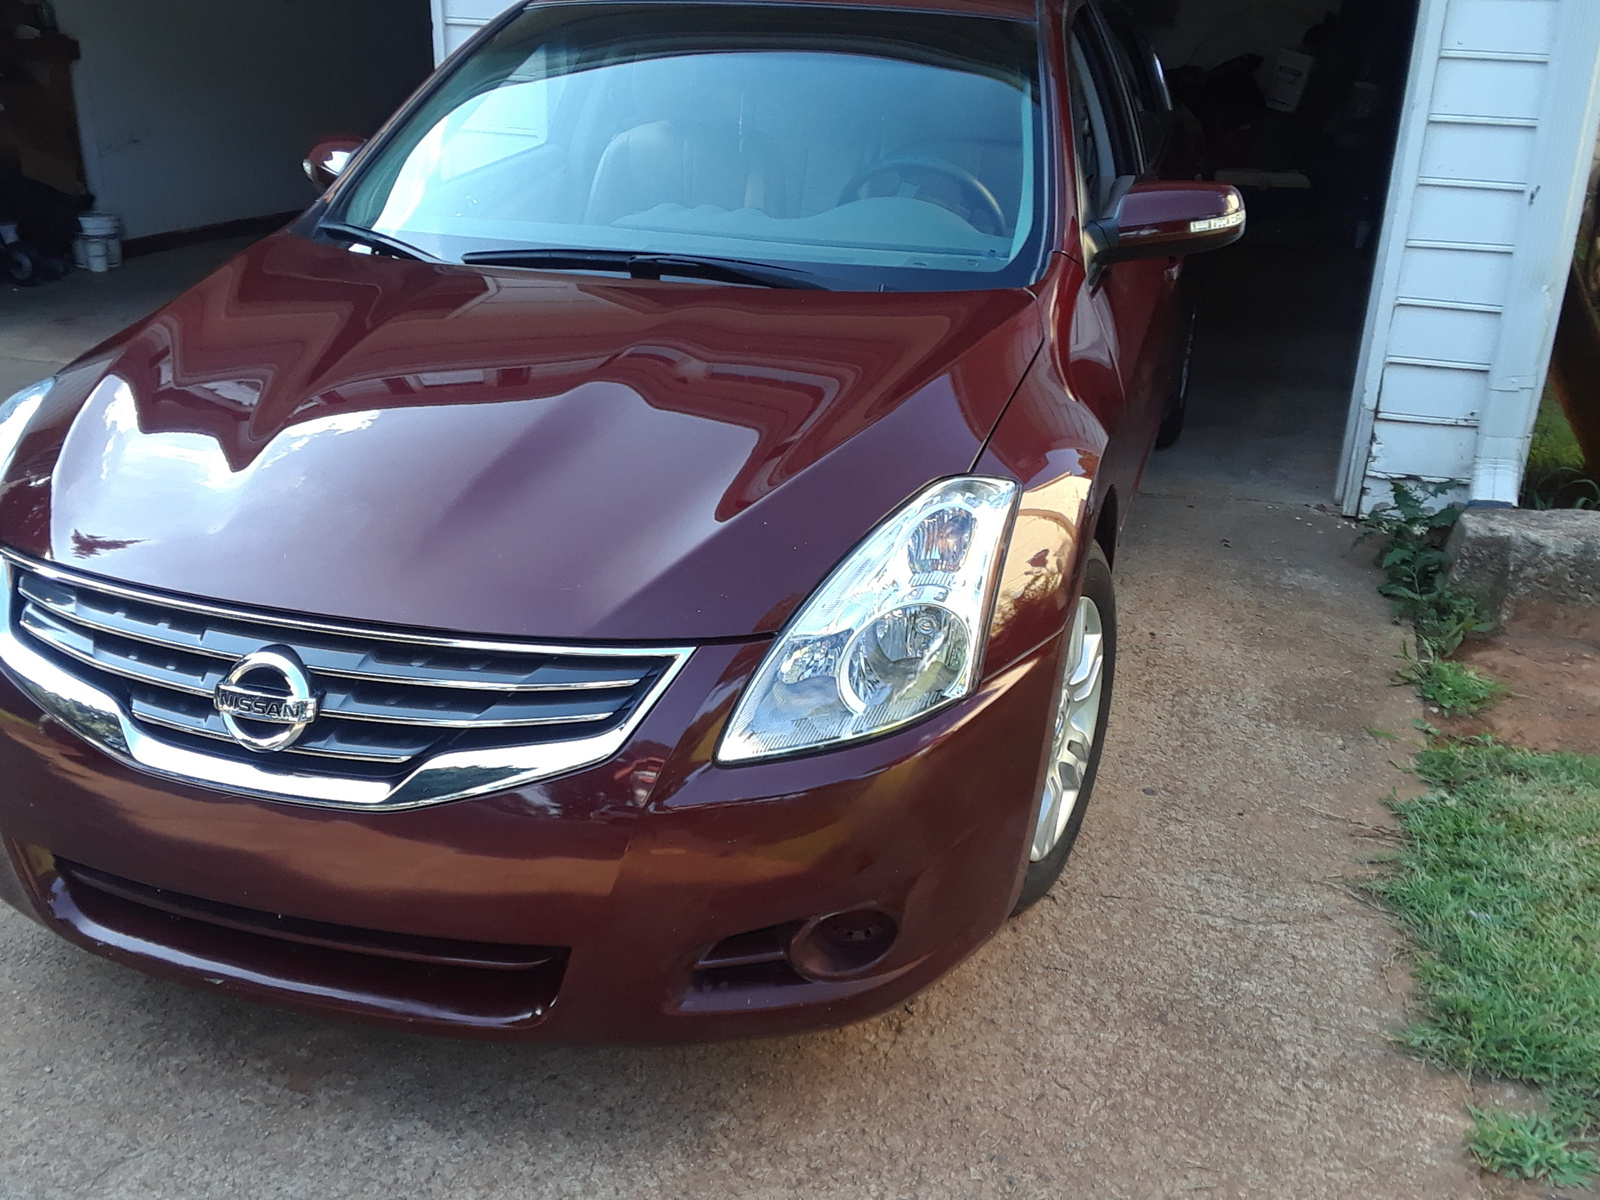 2012 nissan altima 2.5 s sedan review